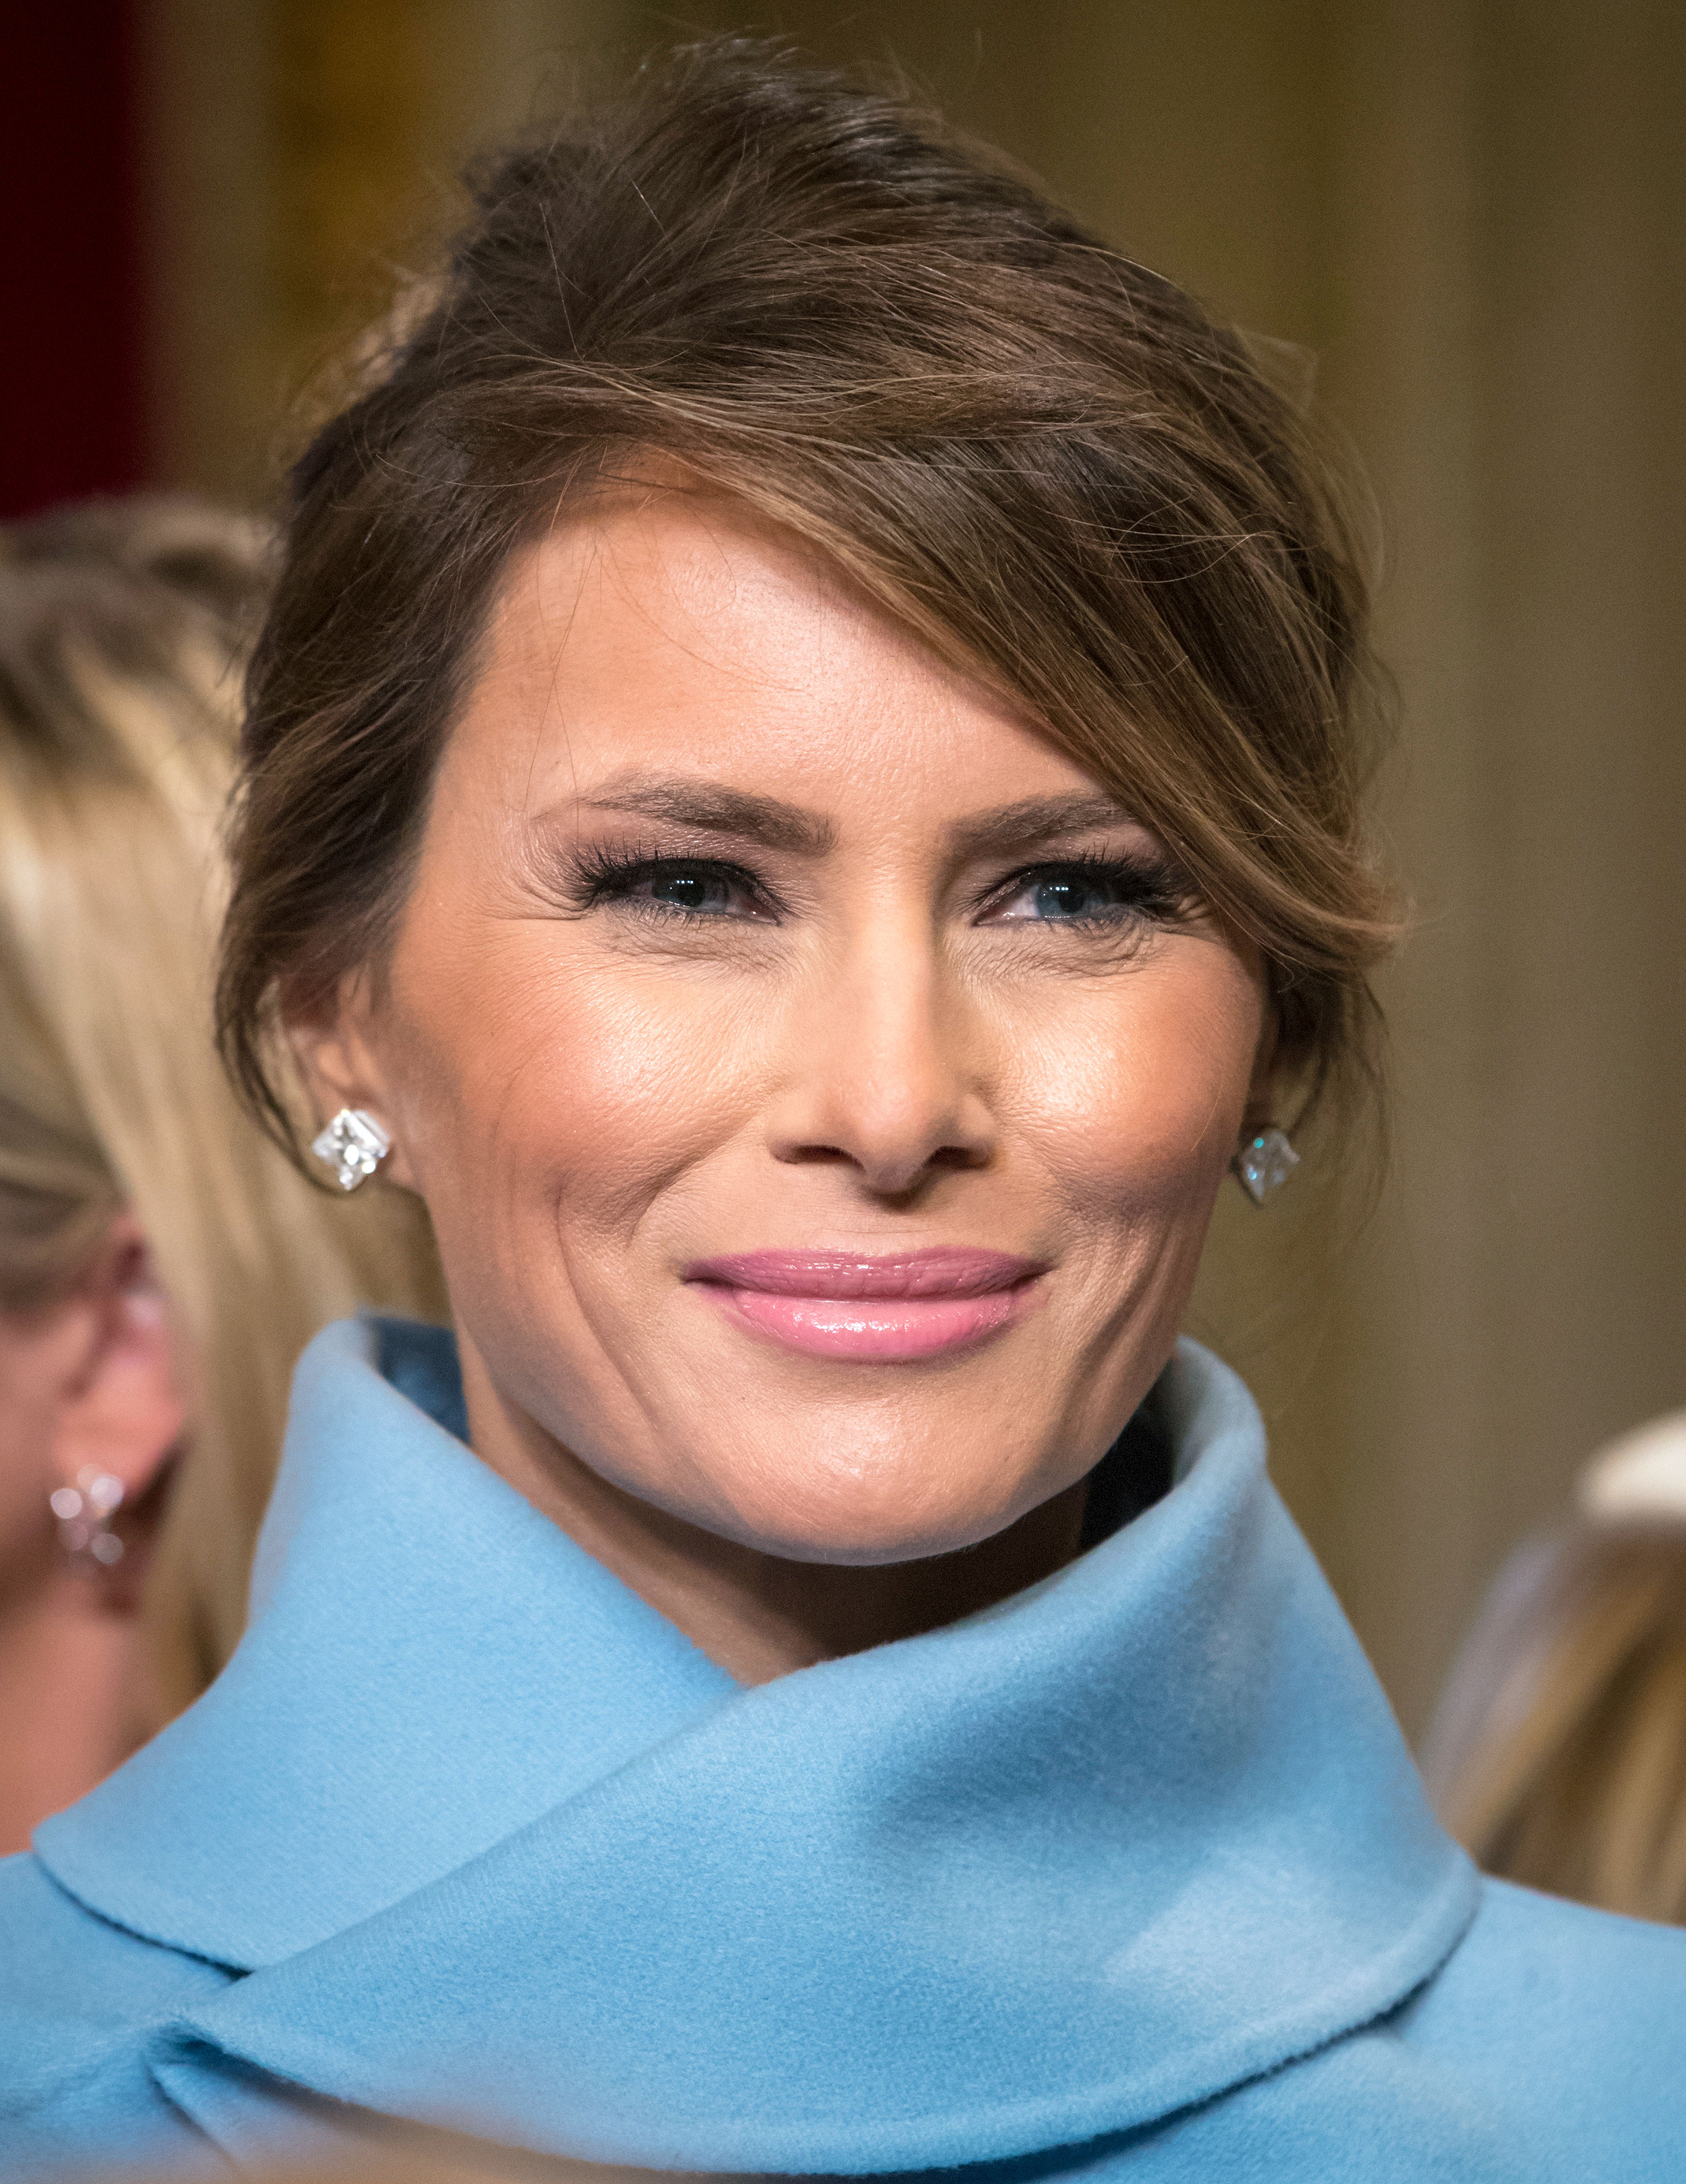 What Makeup Products Melania Trump Wore On Inauguration Day